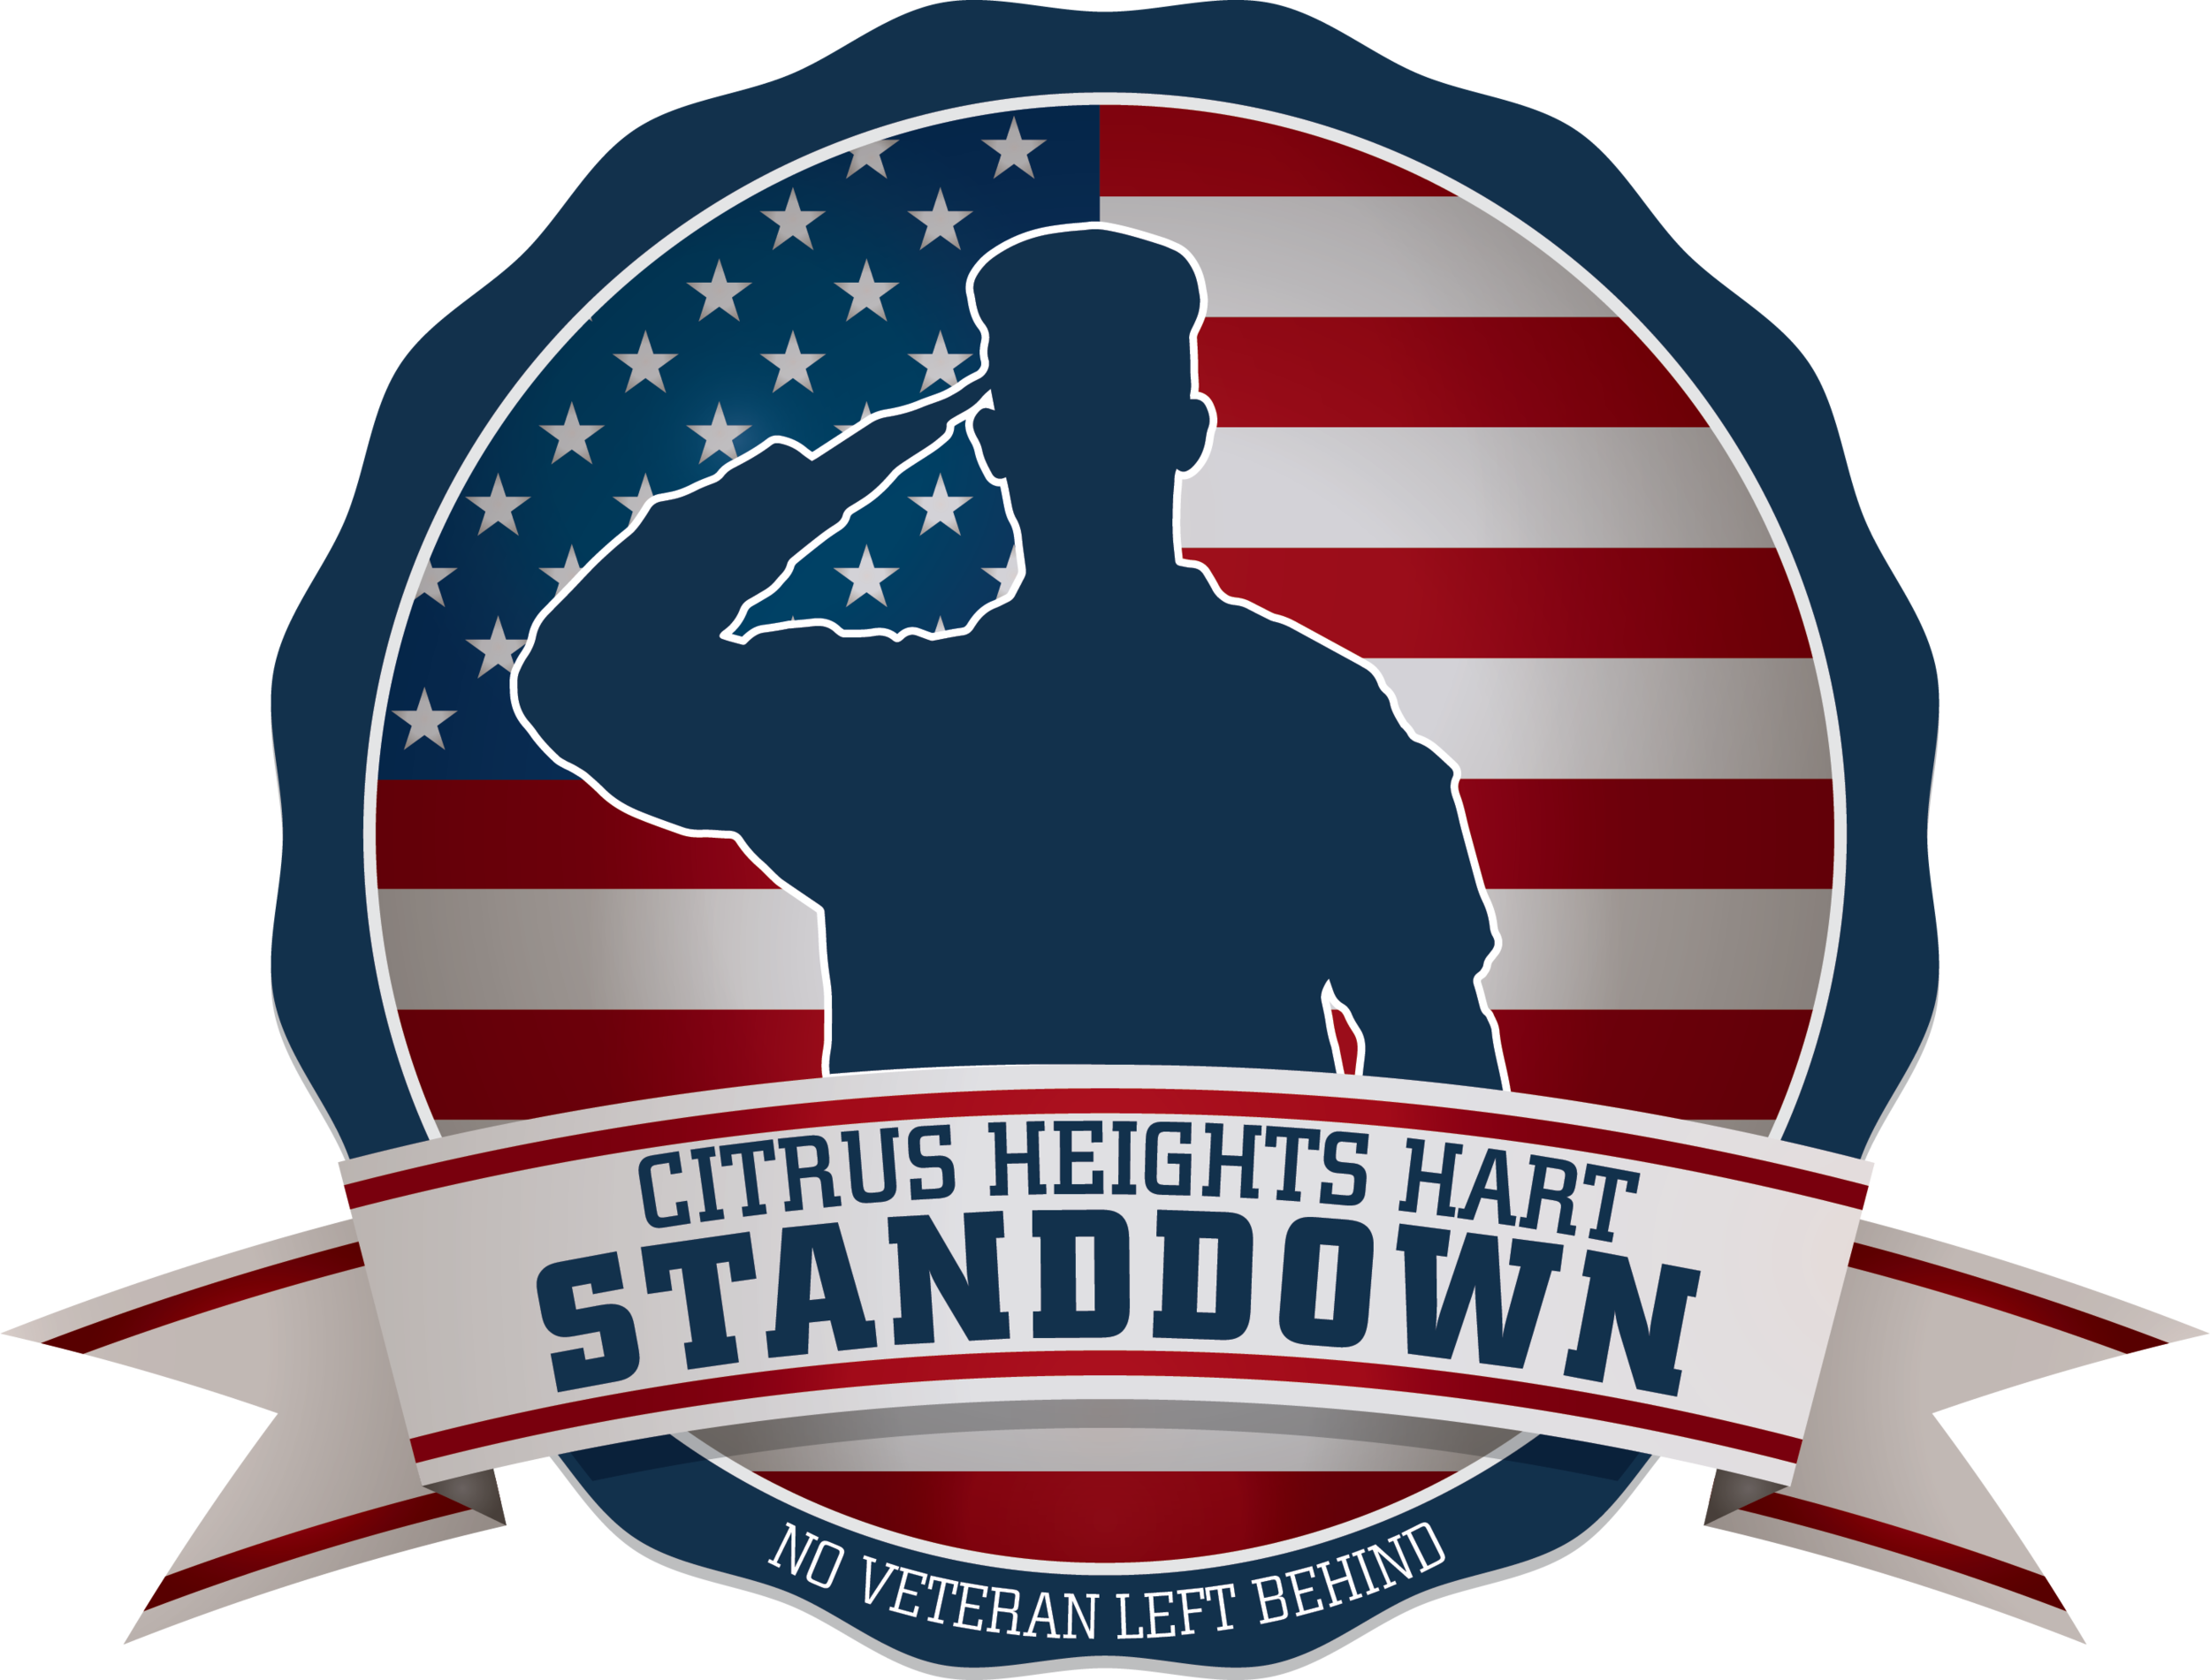 STAND DOWN 2019 - 2019 Date Coming SoonNo Veteran Gets Left BehindLocation TBA